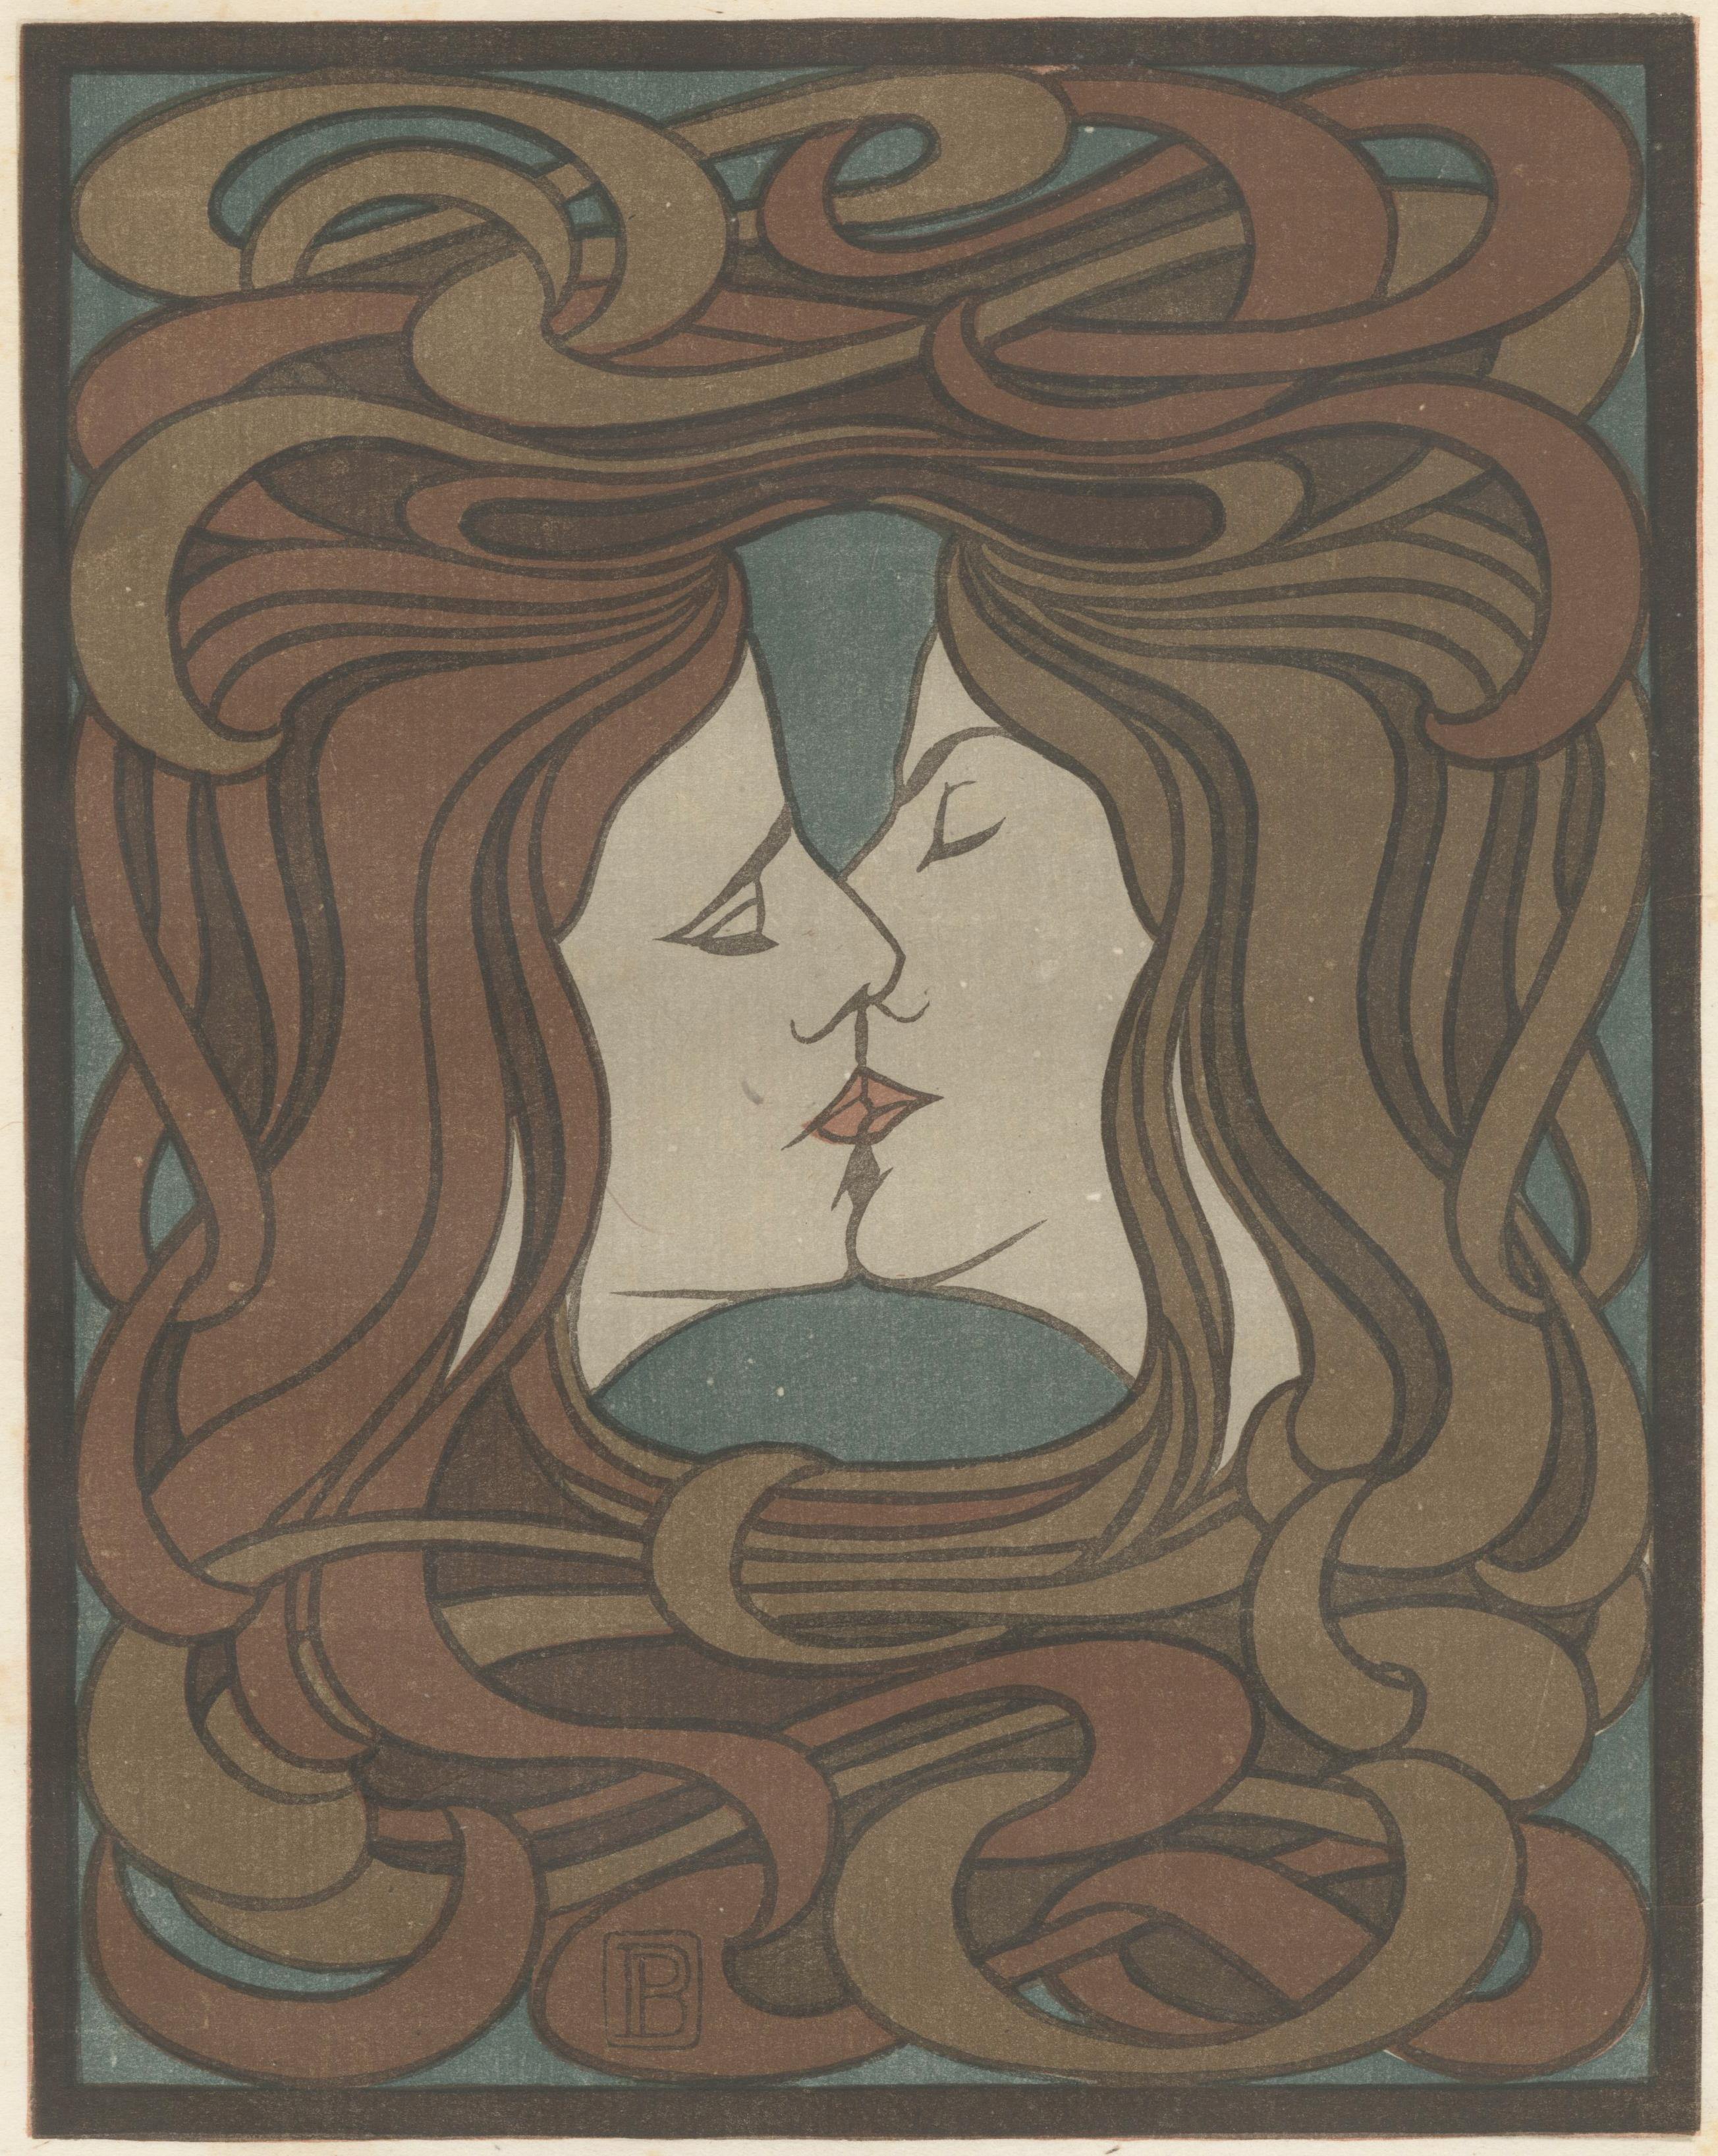 Der Kuss  The Kiss (plate facing page 116)